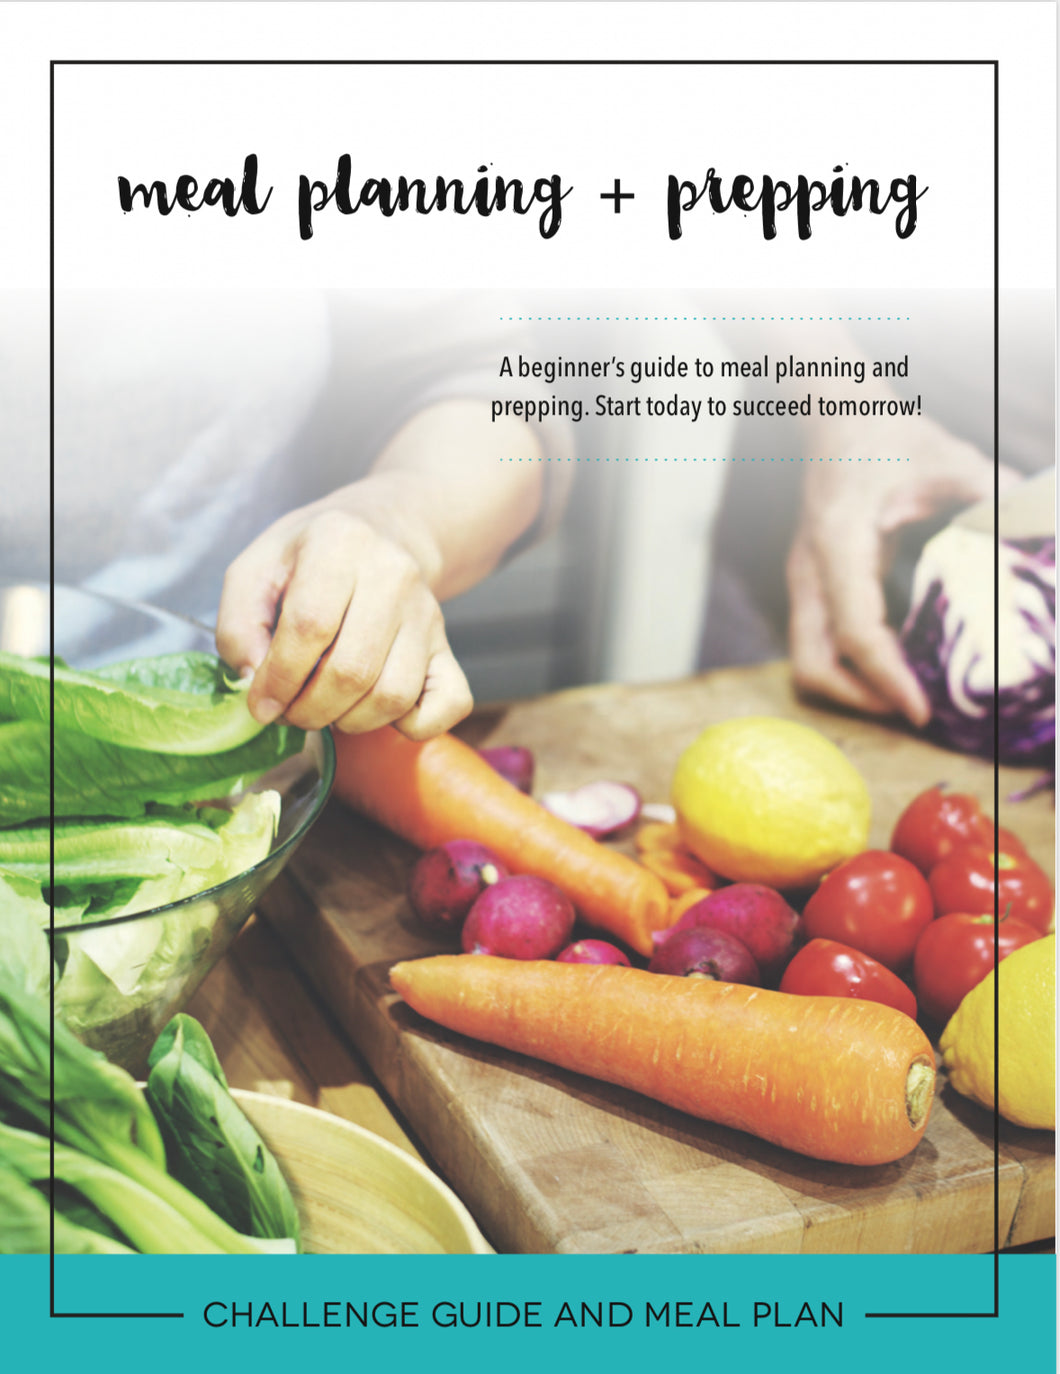 6 Day Meal Planning and Prepping Workshop with Certified Life Coach (APRIL 22)